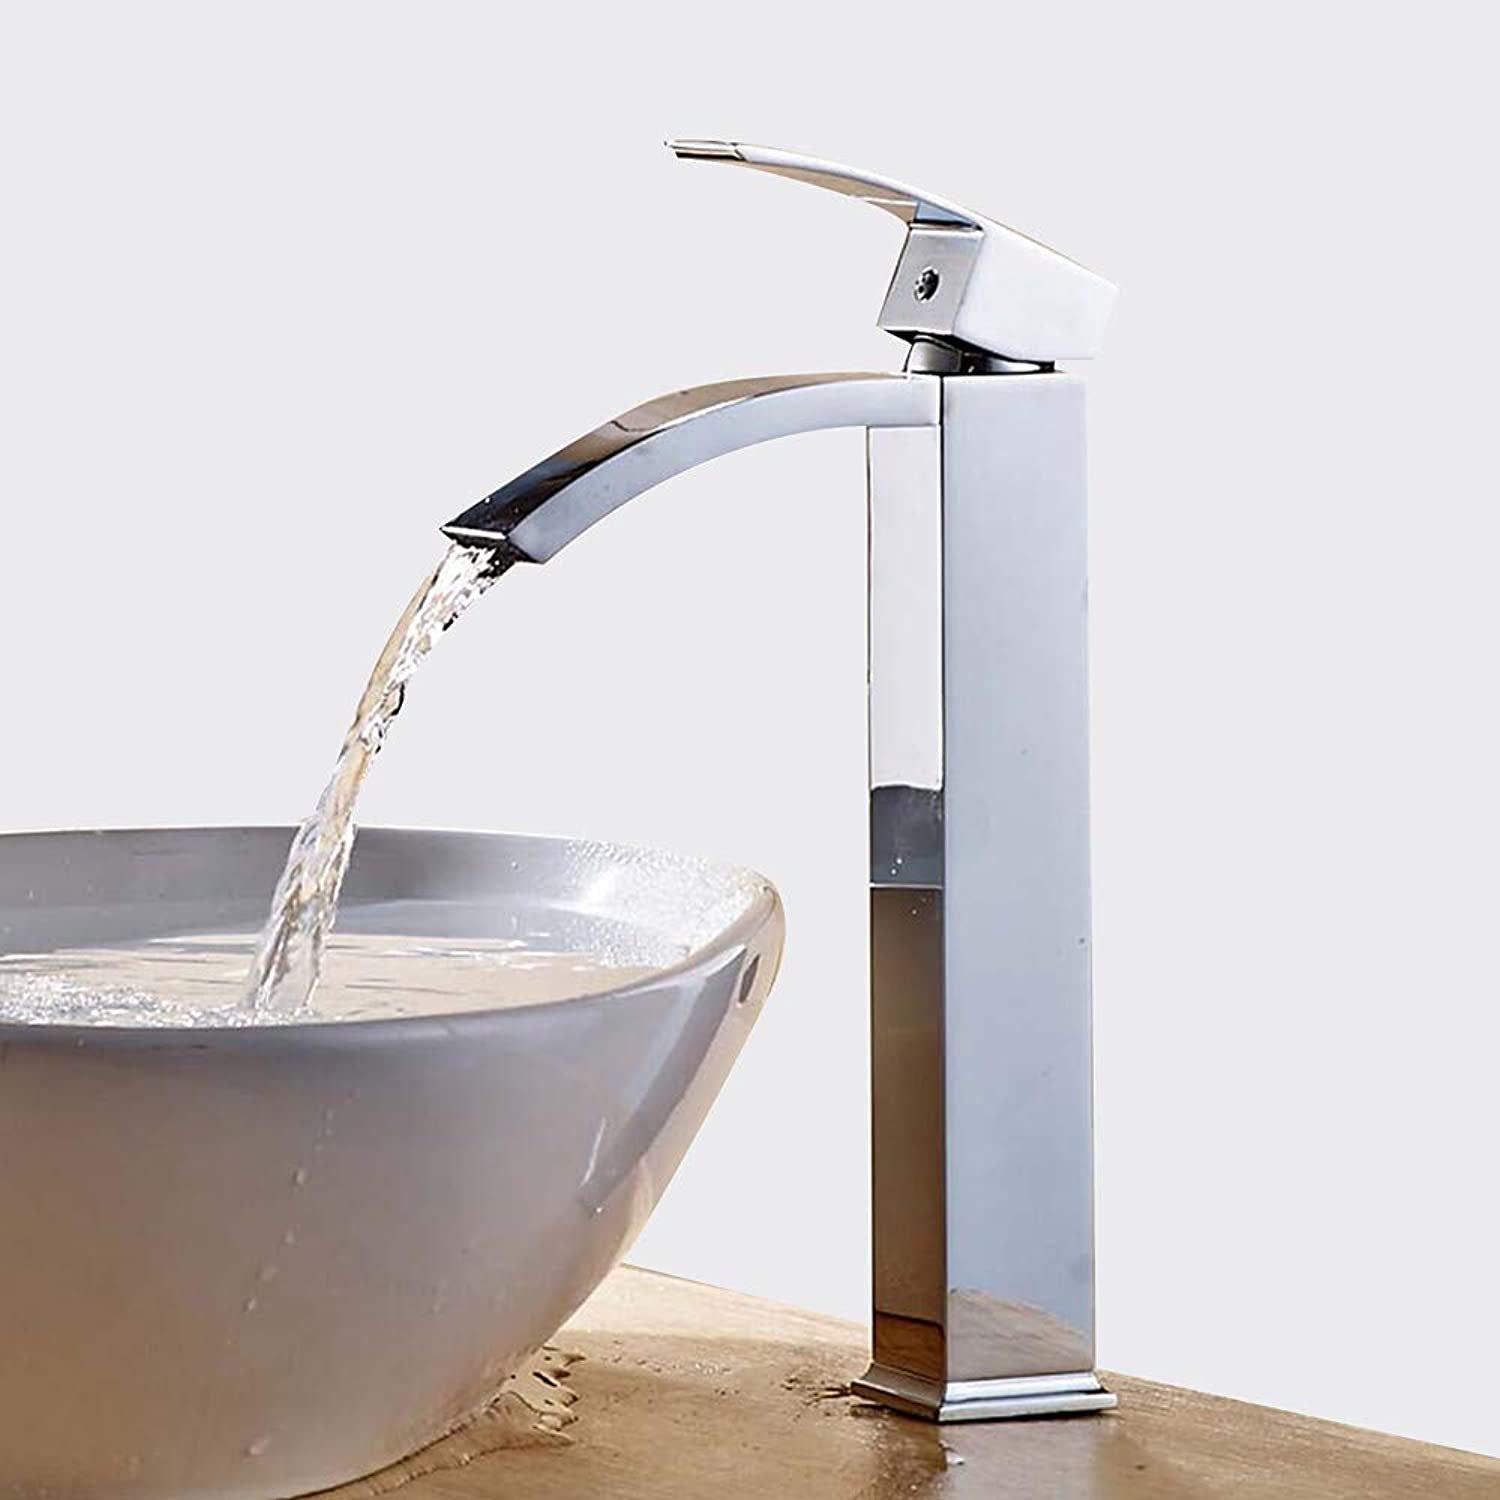 Fire wolf Bathroom faucet:Bathroom Sink Faucet - Waterfall Widespread Chrome Centerset Single Handle One Hole Brass,1